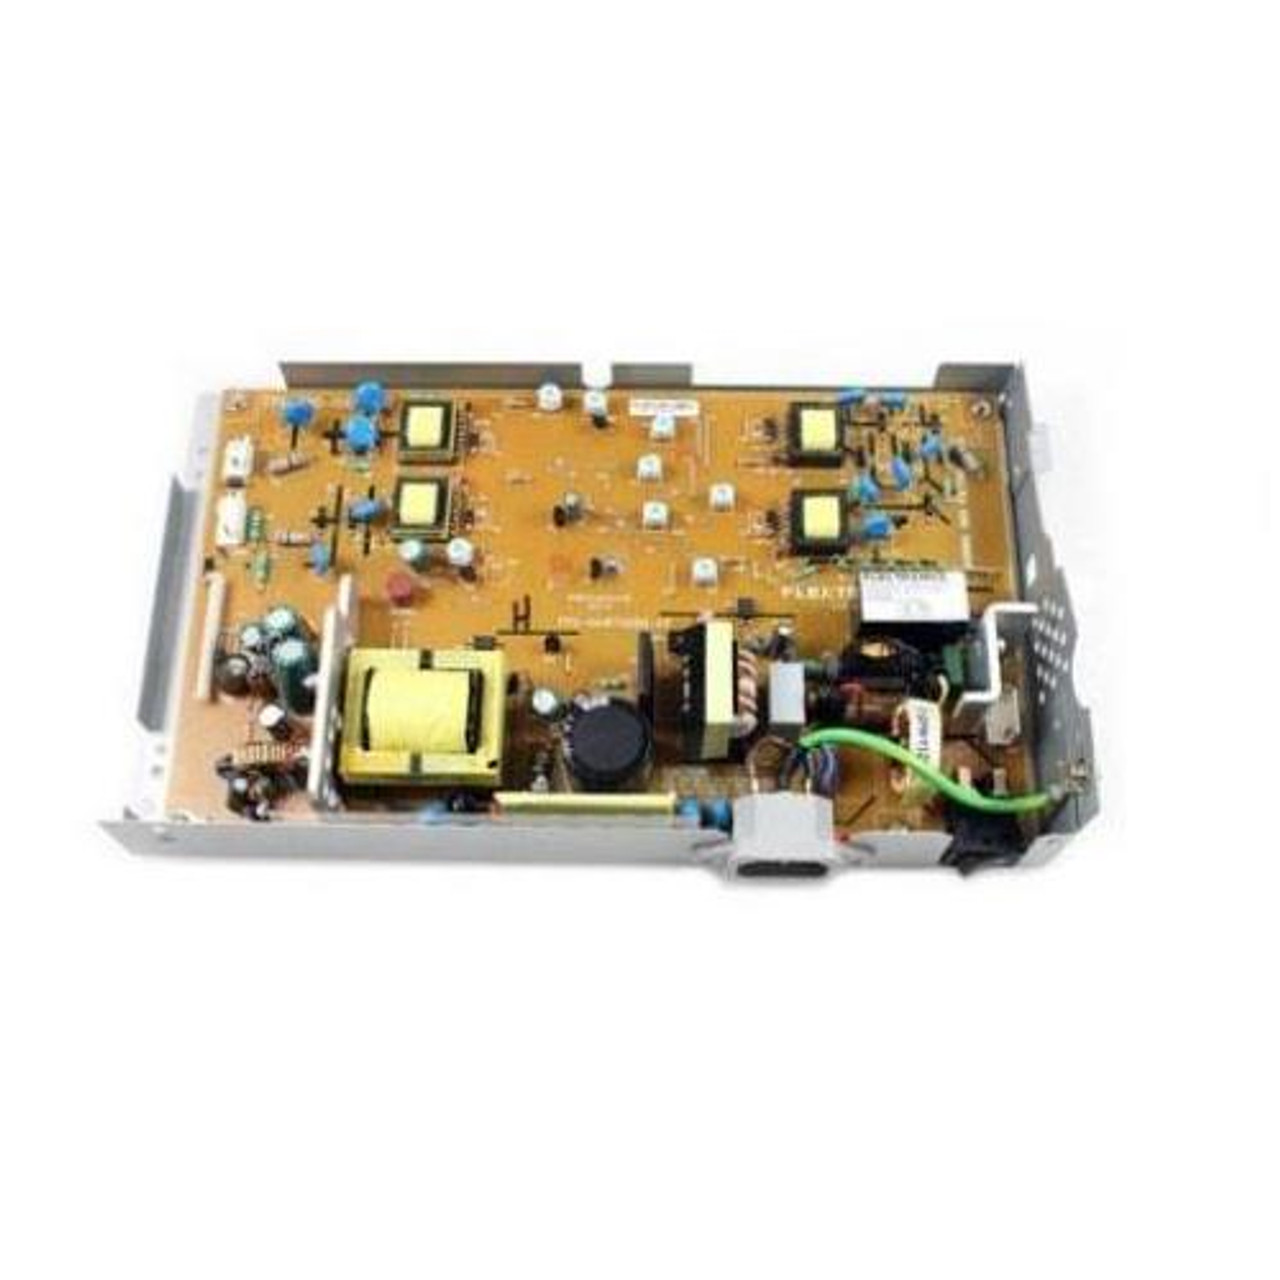 Printer Parts Engine Control Power Board for Dell 1815 Power Supply Board